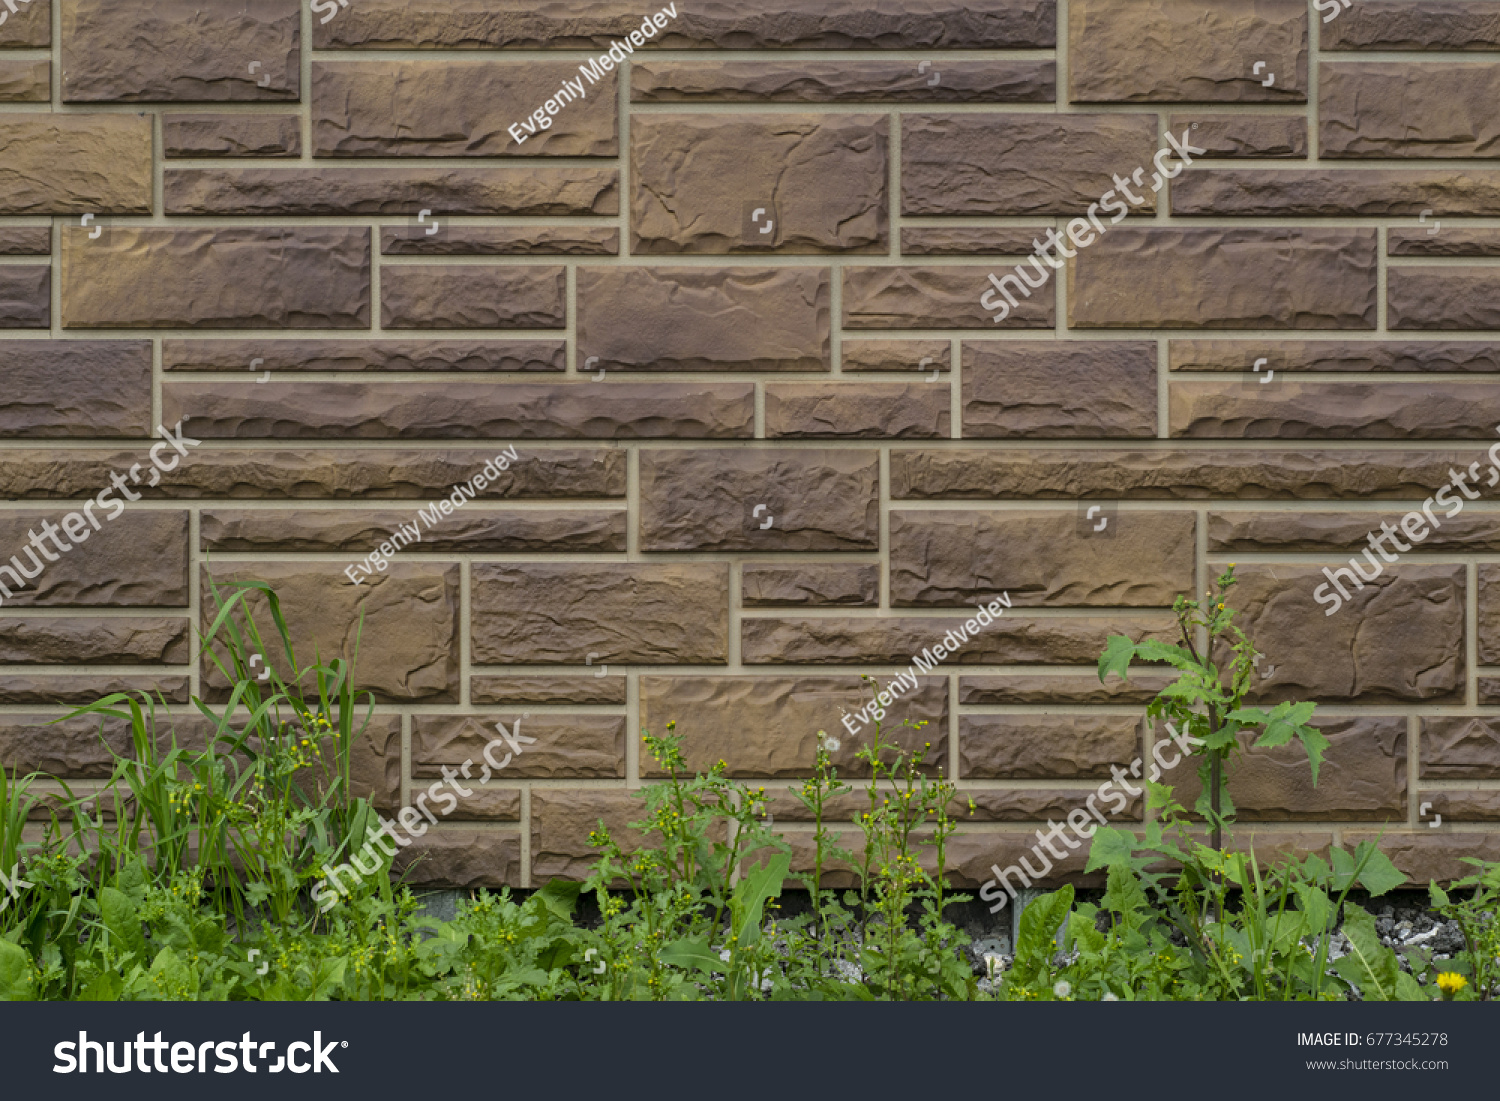 Best Wallpaper Brick Neutral - stock-photo-wallpaper-wall-brown-stone-neutral-grunge-with-grass-677345278  Graphic_845272.jpg